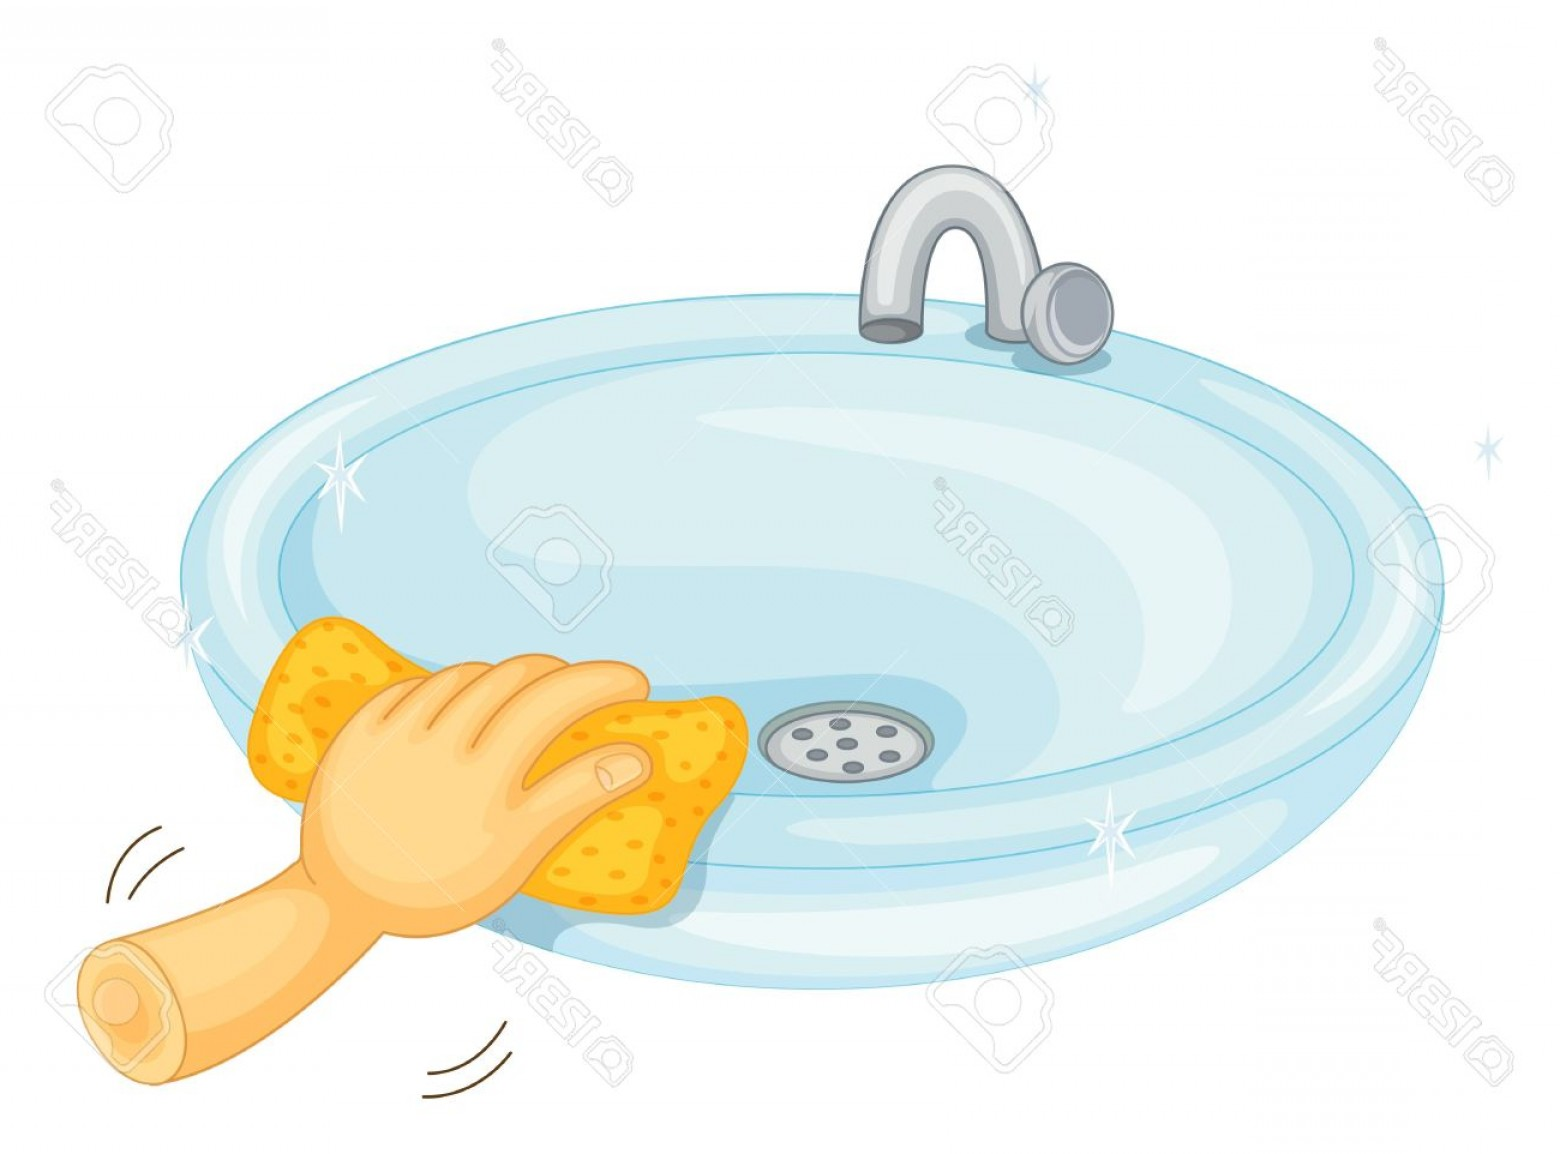 cleaning bathroom sinks to clean themselves clipart clipground 12349